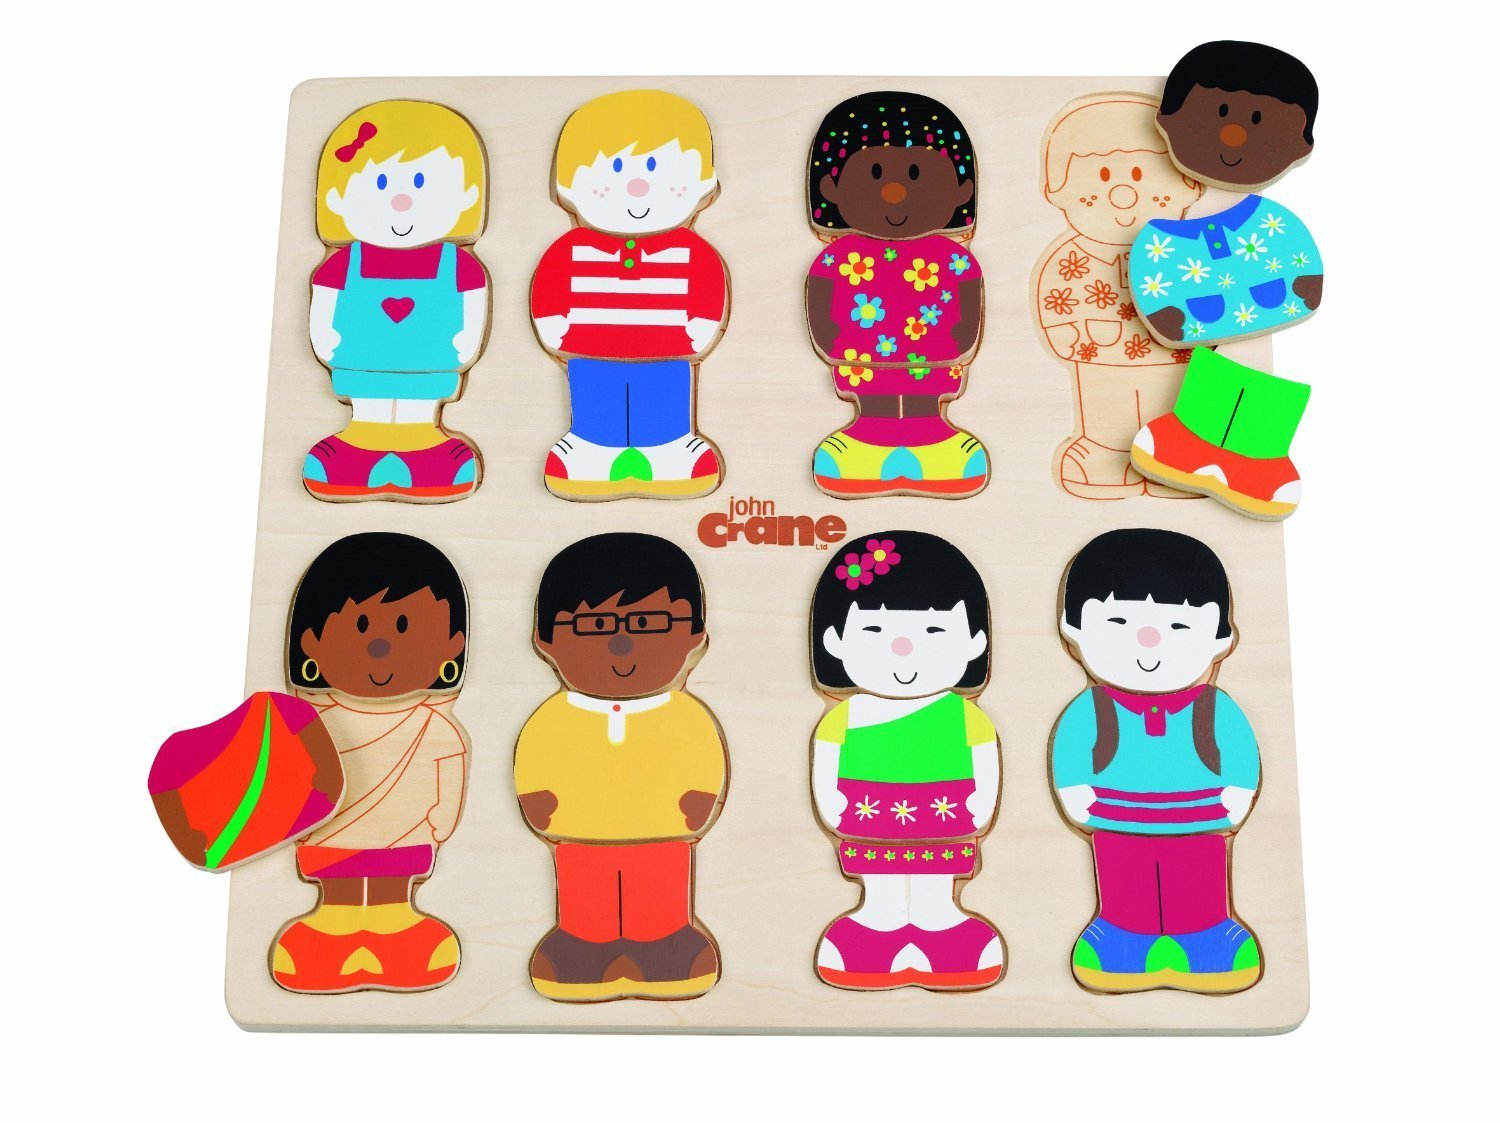 Little Boy clipart puzzled Games Wooden Toys Toys co